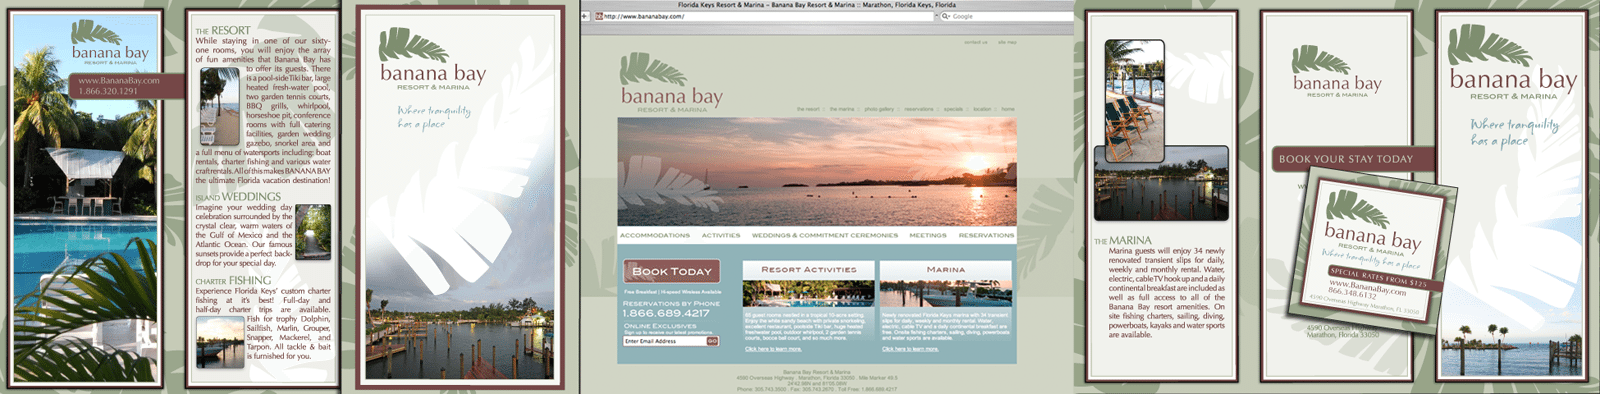 Hotel Branding Agency Creative | Banana Bay Resort